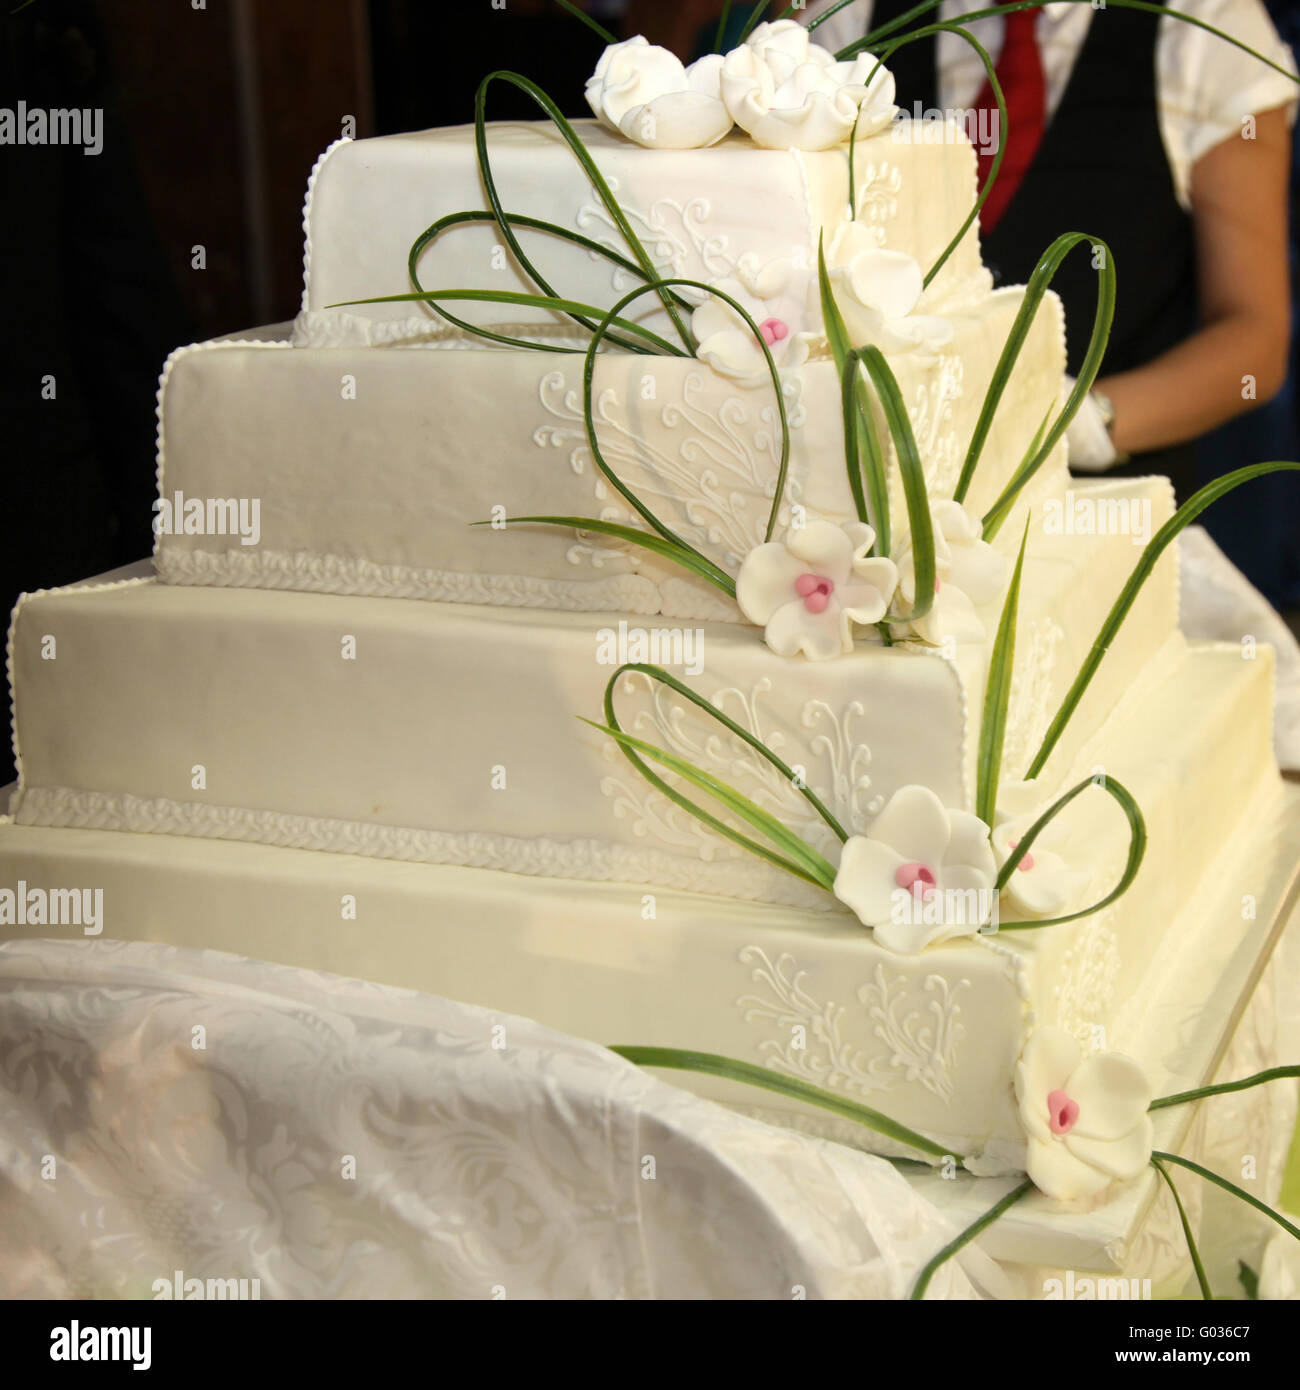 Admirable Huge Wedding Cake Or Birthday Cake English Style Stock Photo Funny Birthday Cards Online Alyptdamsfinfo